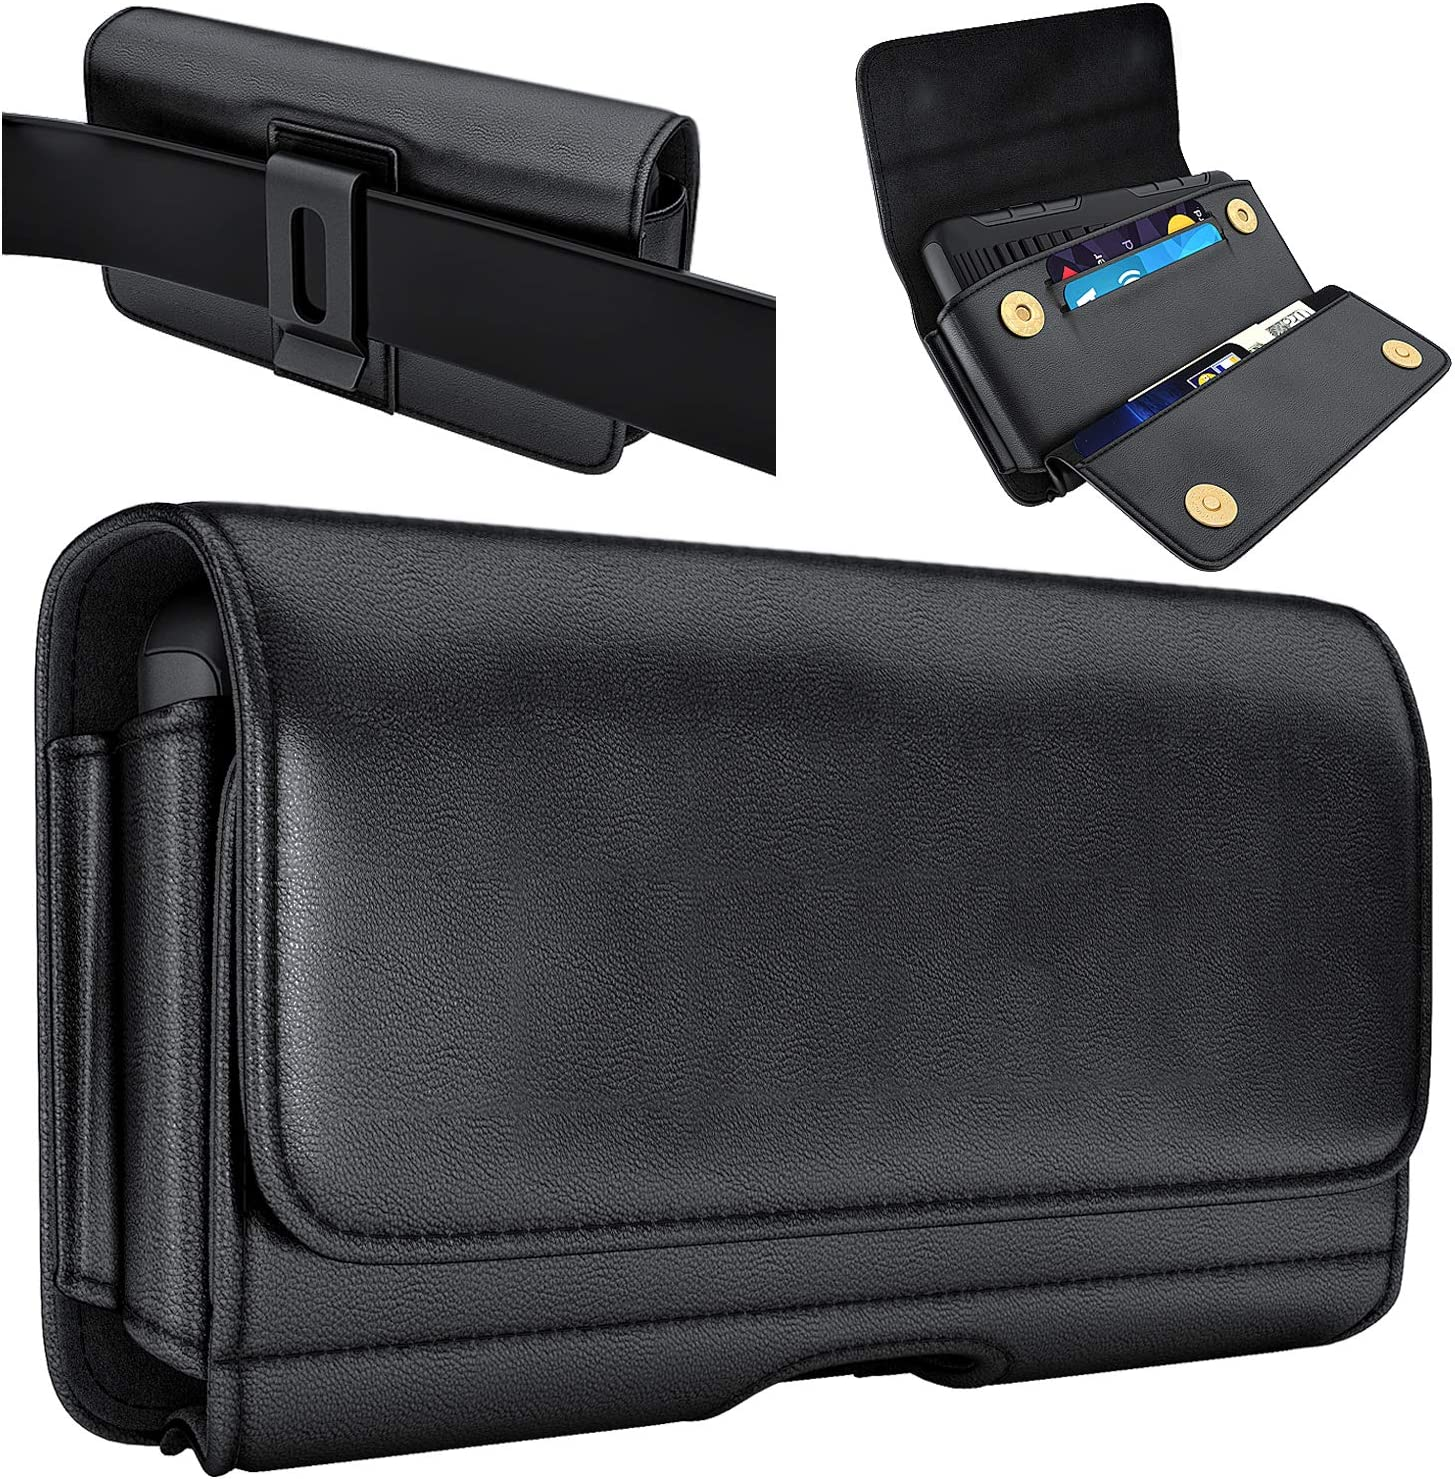 De-Bin iPhone 11 Pro Belt Holster, iPhone X / Xs / 10s Belt Case, Leather Cell Phone Belt Case with Belt Clip Pouch Cover Belt Holder for Apple iPhone 10 / 11 Pro (Fits Phones w/ Otterbox Cases on)